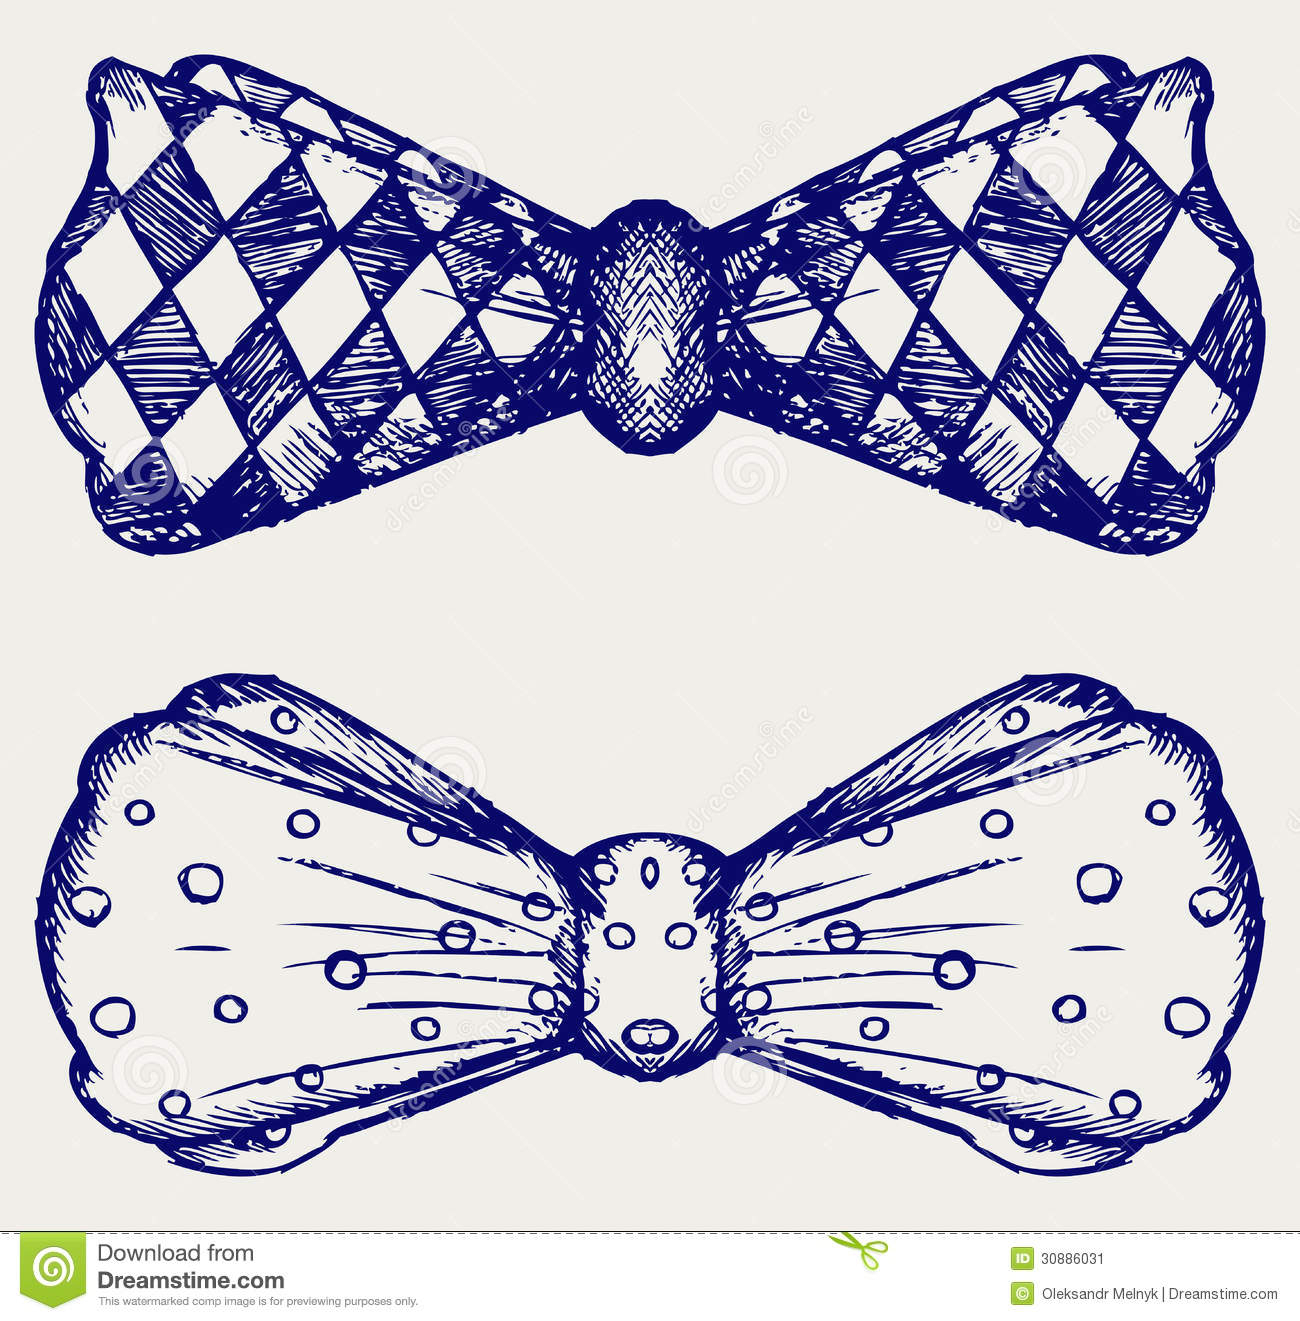 Cute Bow Tie Drawing Bow Tie Drawing at Get...